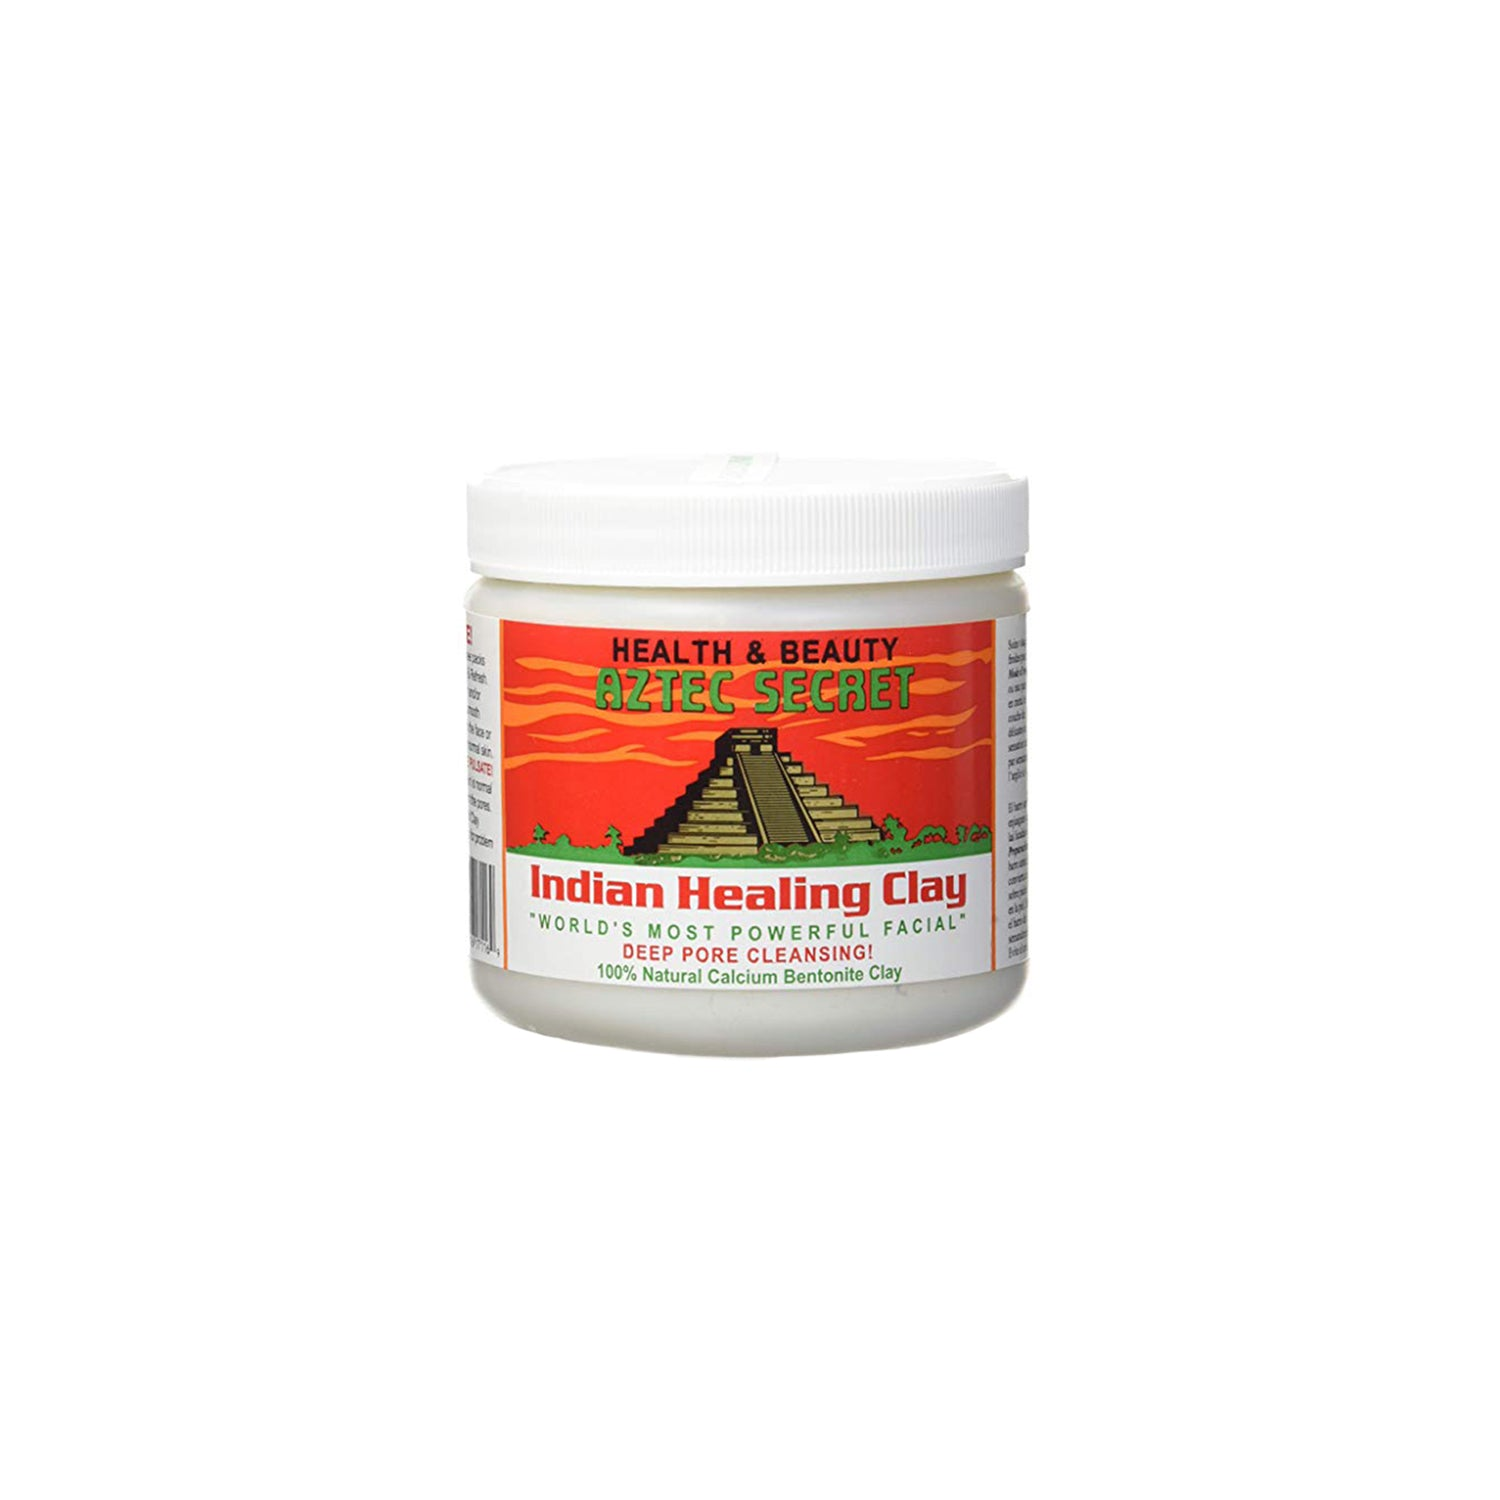 Aztec Secret Indian Healing Clay Deep Pore Cleanser